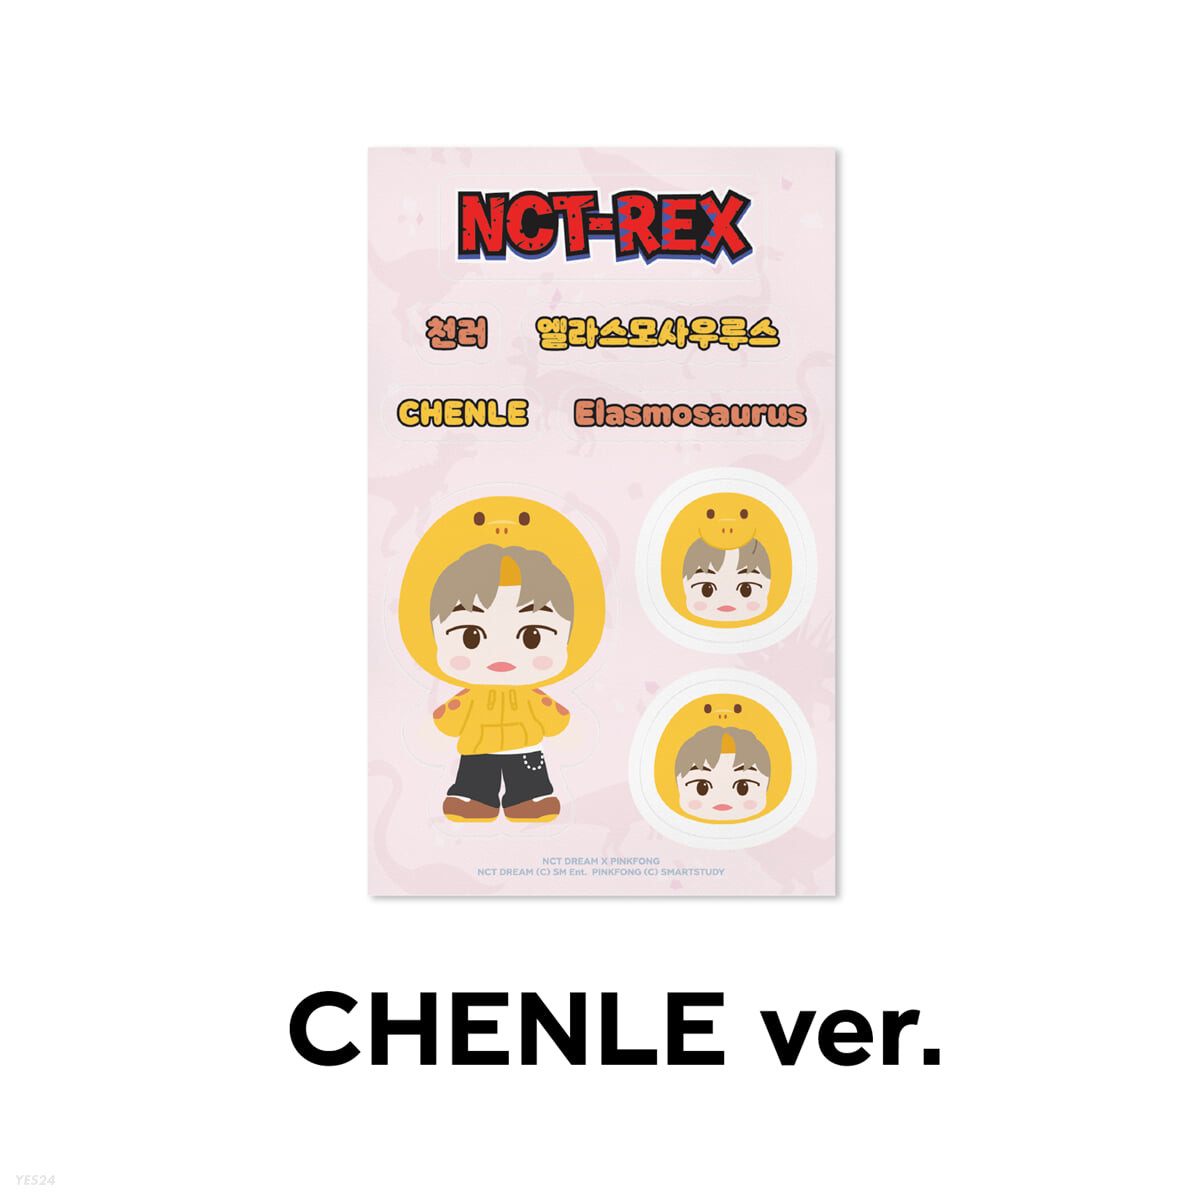 [CHENLE] REMOVABLE LUGGAGE STICKER - NCT DREAM X PINKFONG